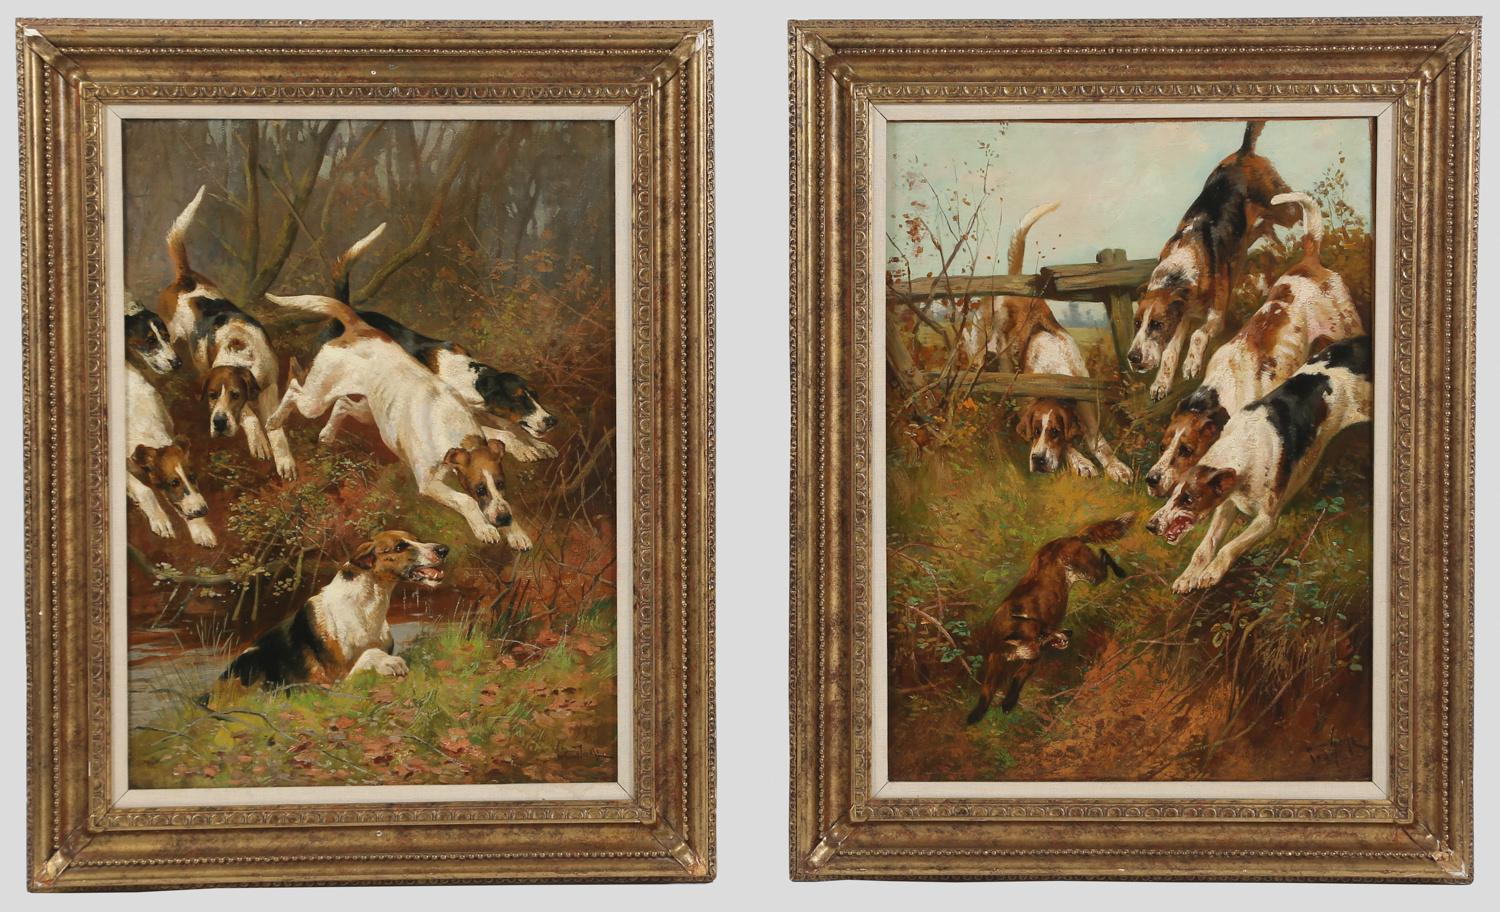 Arthur Wardle, Two Paintings Over the Water and Over the Fence Oil on Canvas 1887